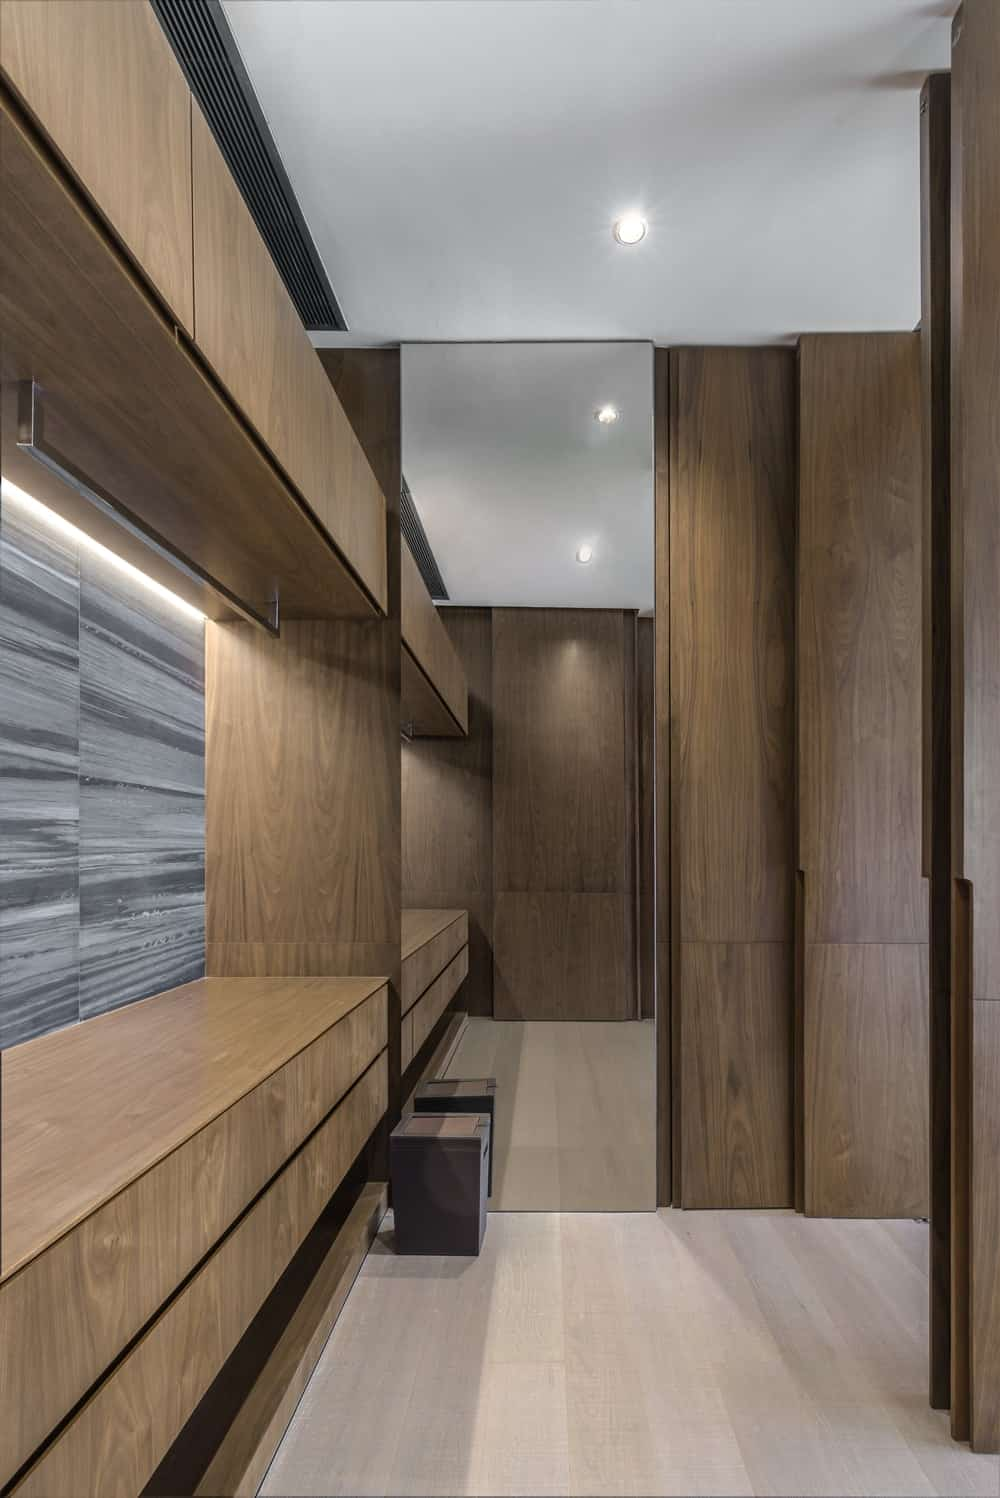 This is the bathroom that is dominated by wooden structures with cabinets and drawers.